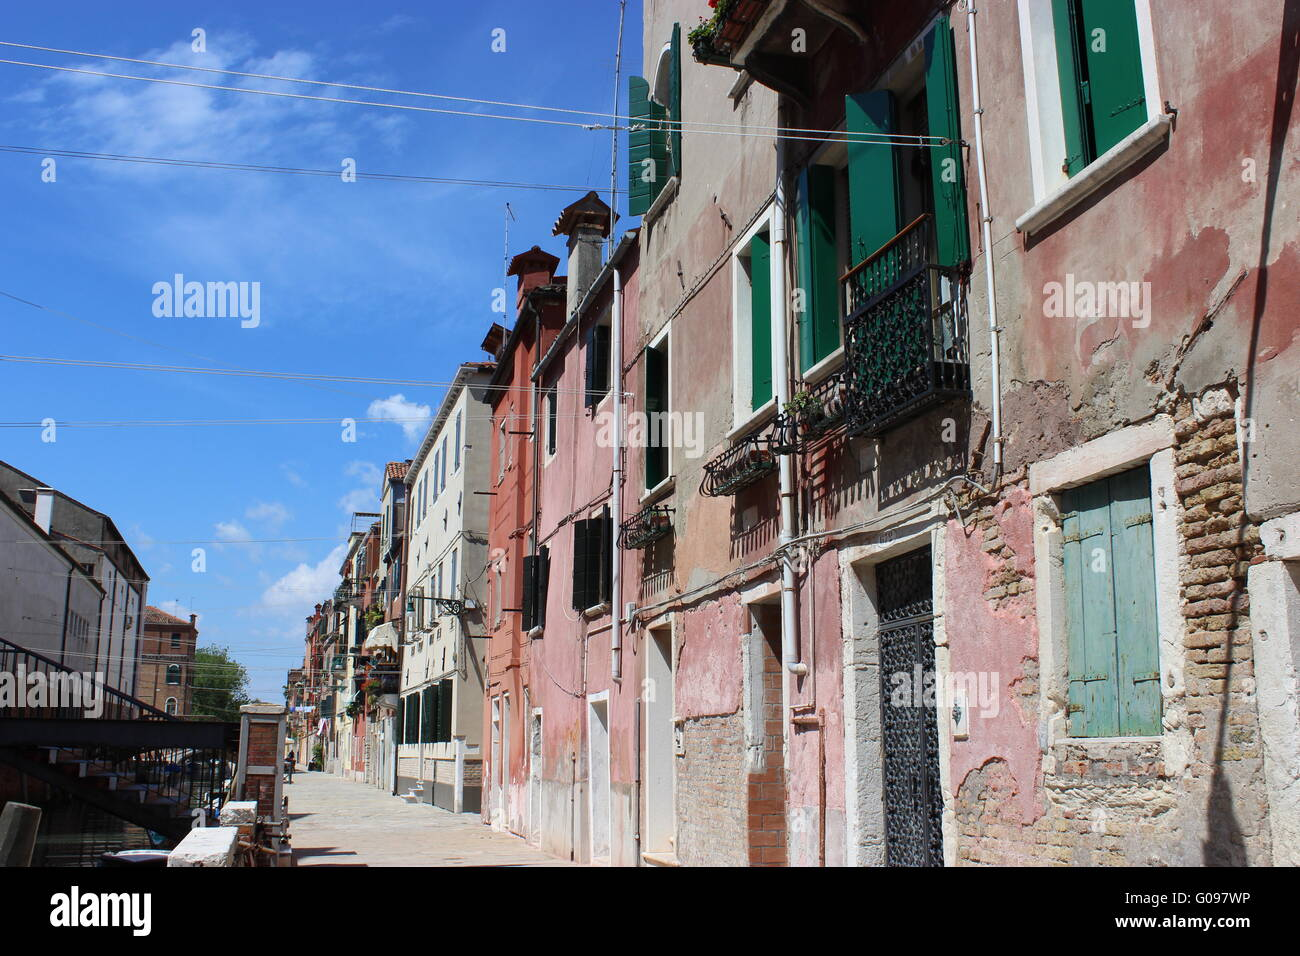 Venice off the tourist track - Stock Image